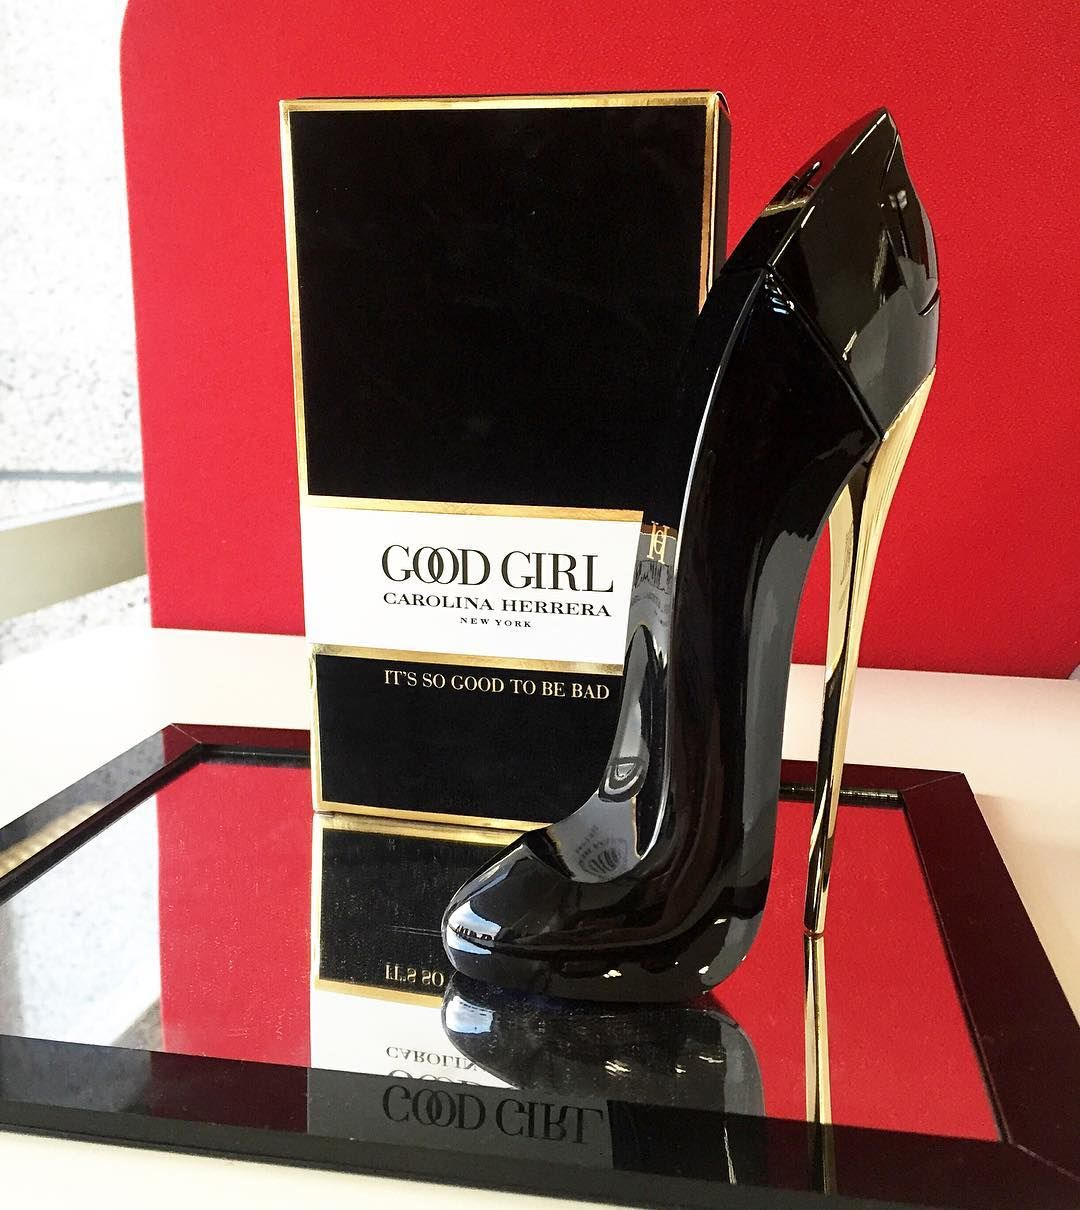 good girl carolina herrera More. good girl carolina herrera More Perfume ... c9d0ea0a46